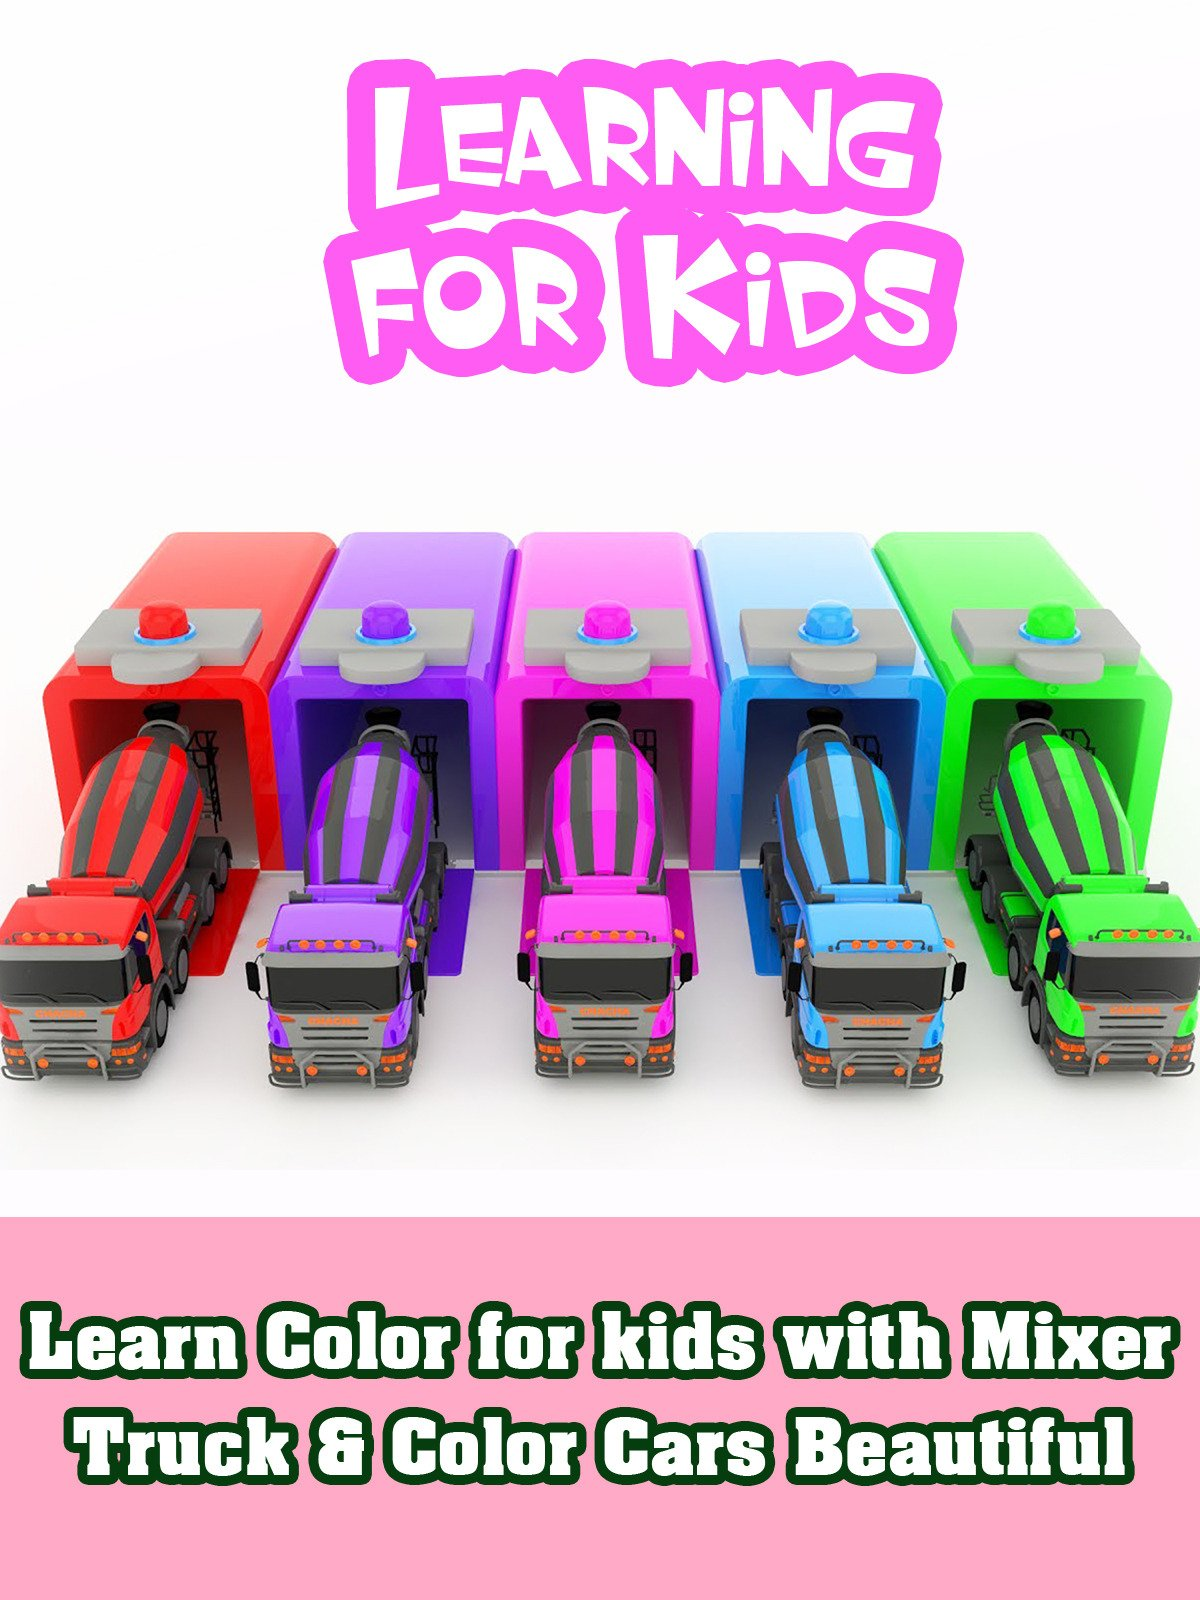 Learn Color for kids with Mixer Truck & Color Cars Beautiful